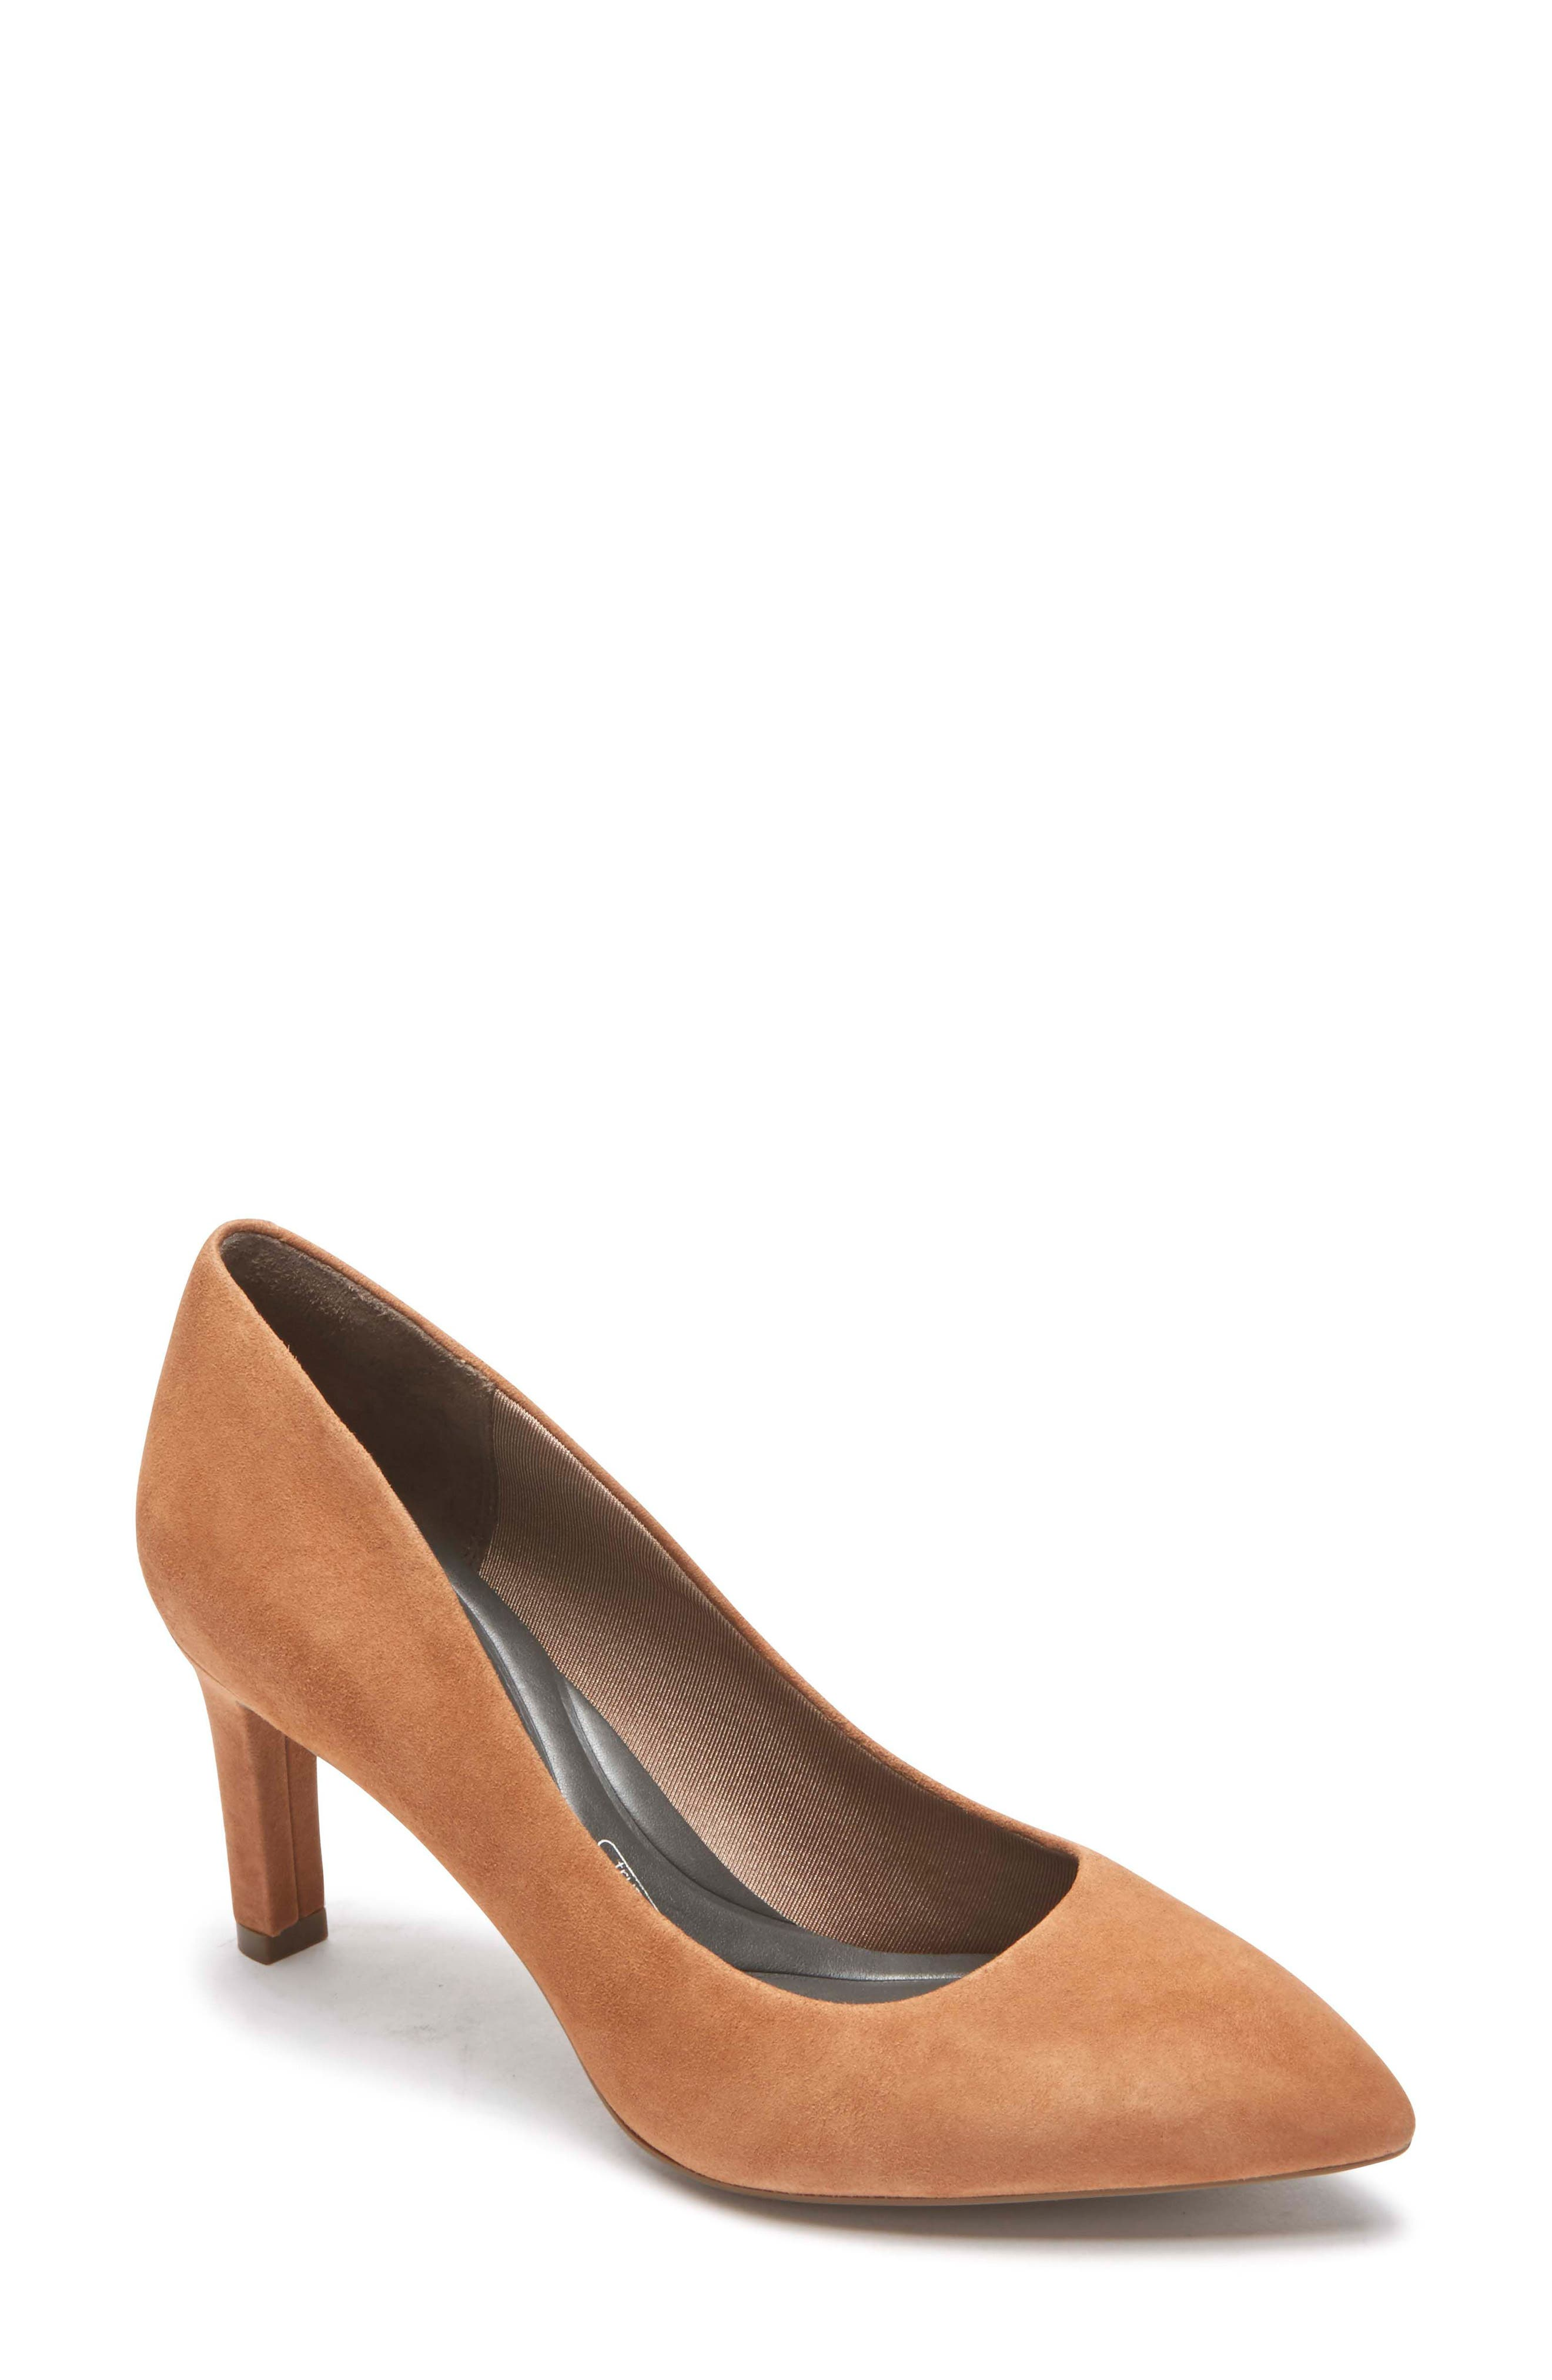 Rockport Total Motion Luxe Valerie Pump, Brown